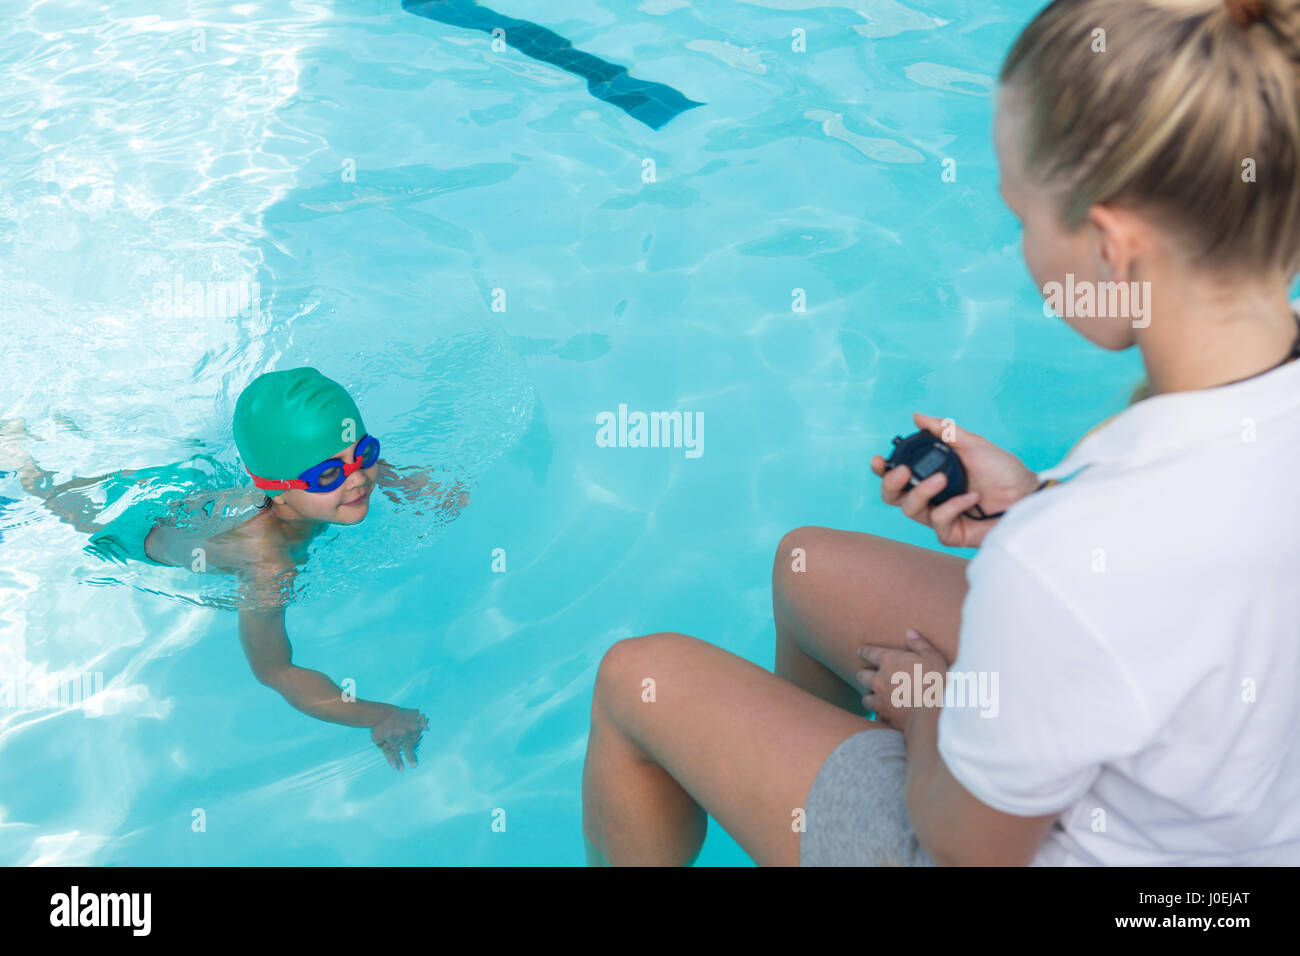 Female trainer monitoring time of boy swimming in pool at the leisure center - Stock Image